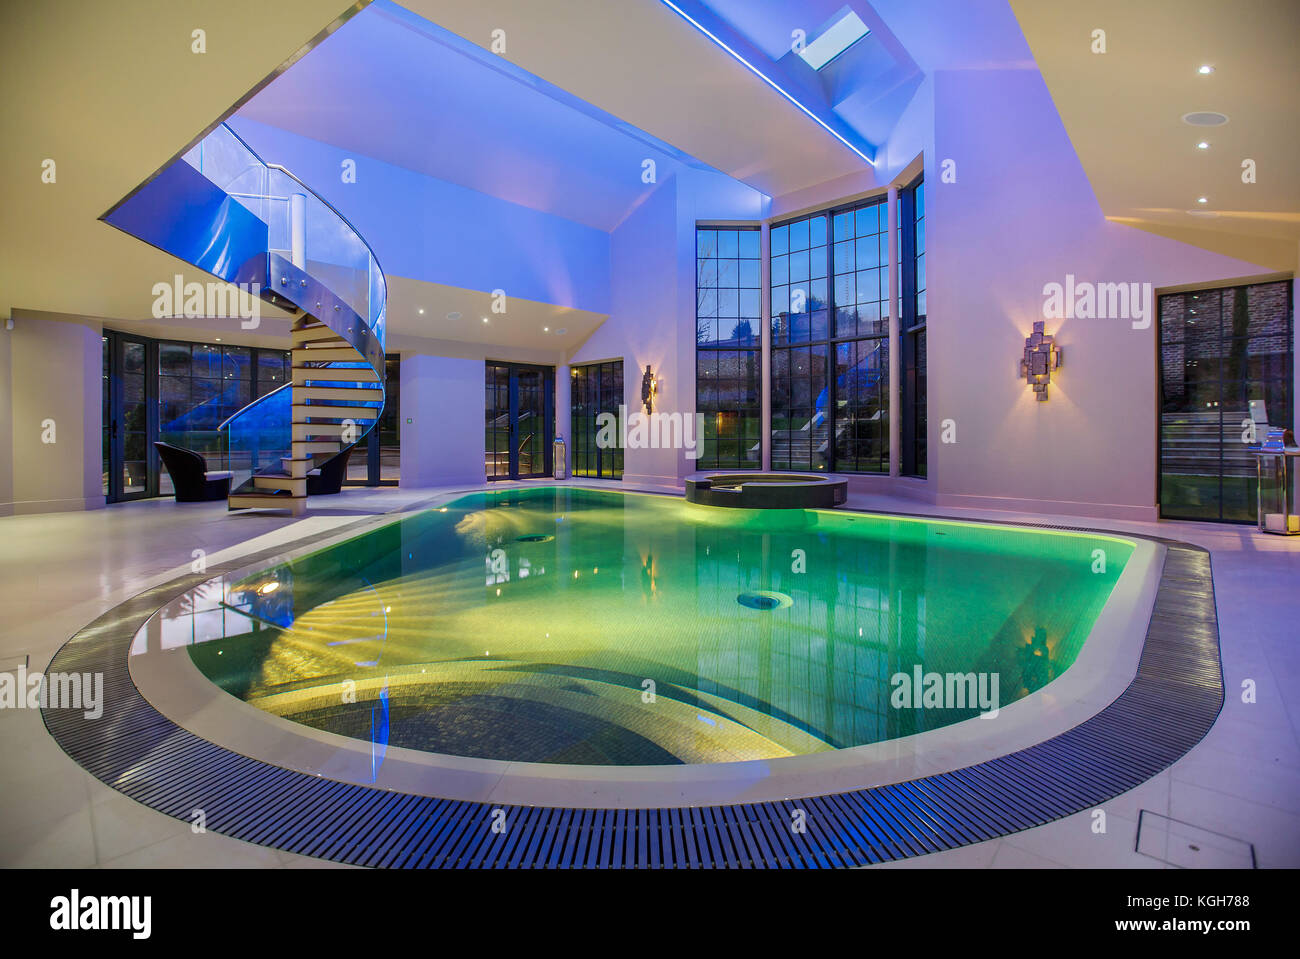 Luxus Schwimmbad Pool Im Haus